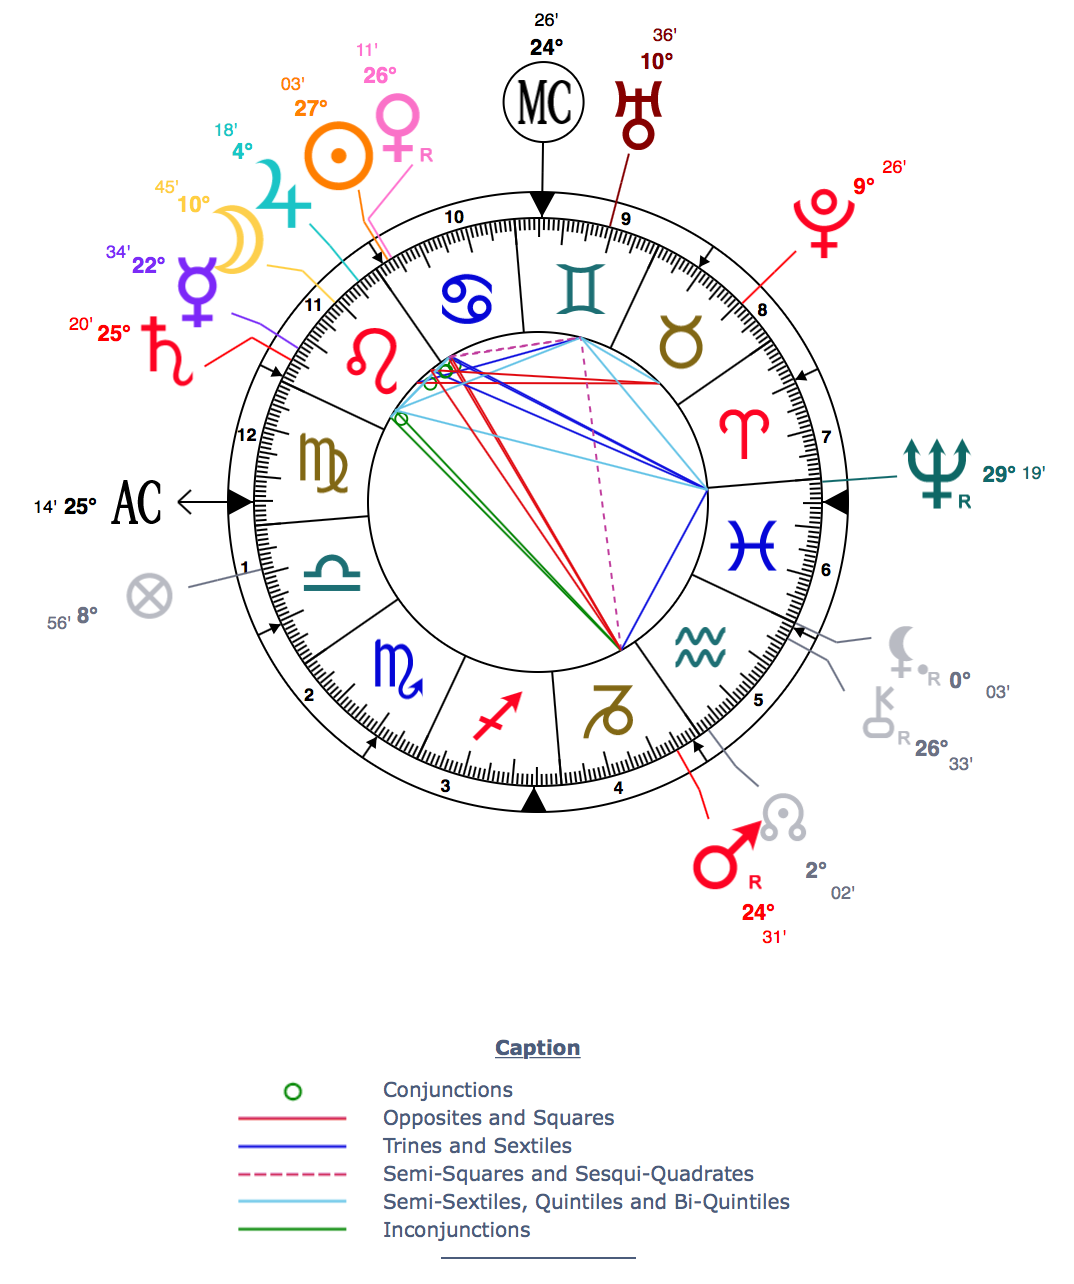 Jesus natal chart astrotheme horoscope of jim carrey born on hd image of jesus christ birth chart gallery free any chart examples nvjuhfo Image collections